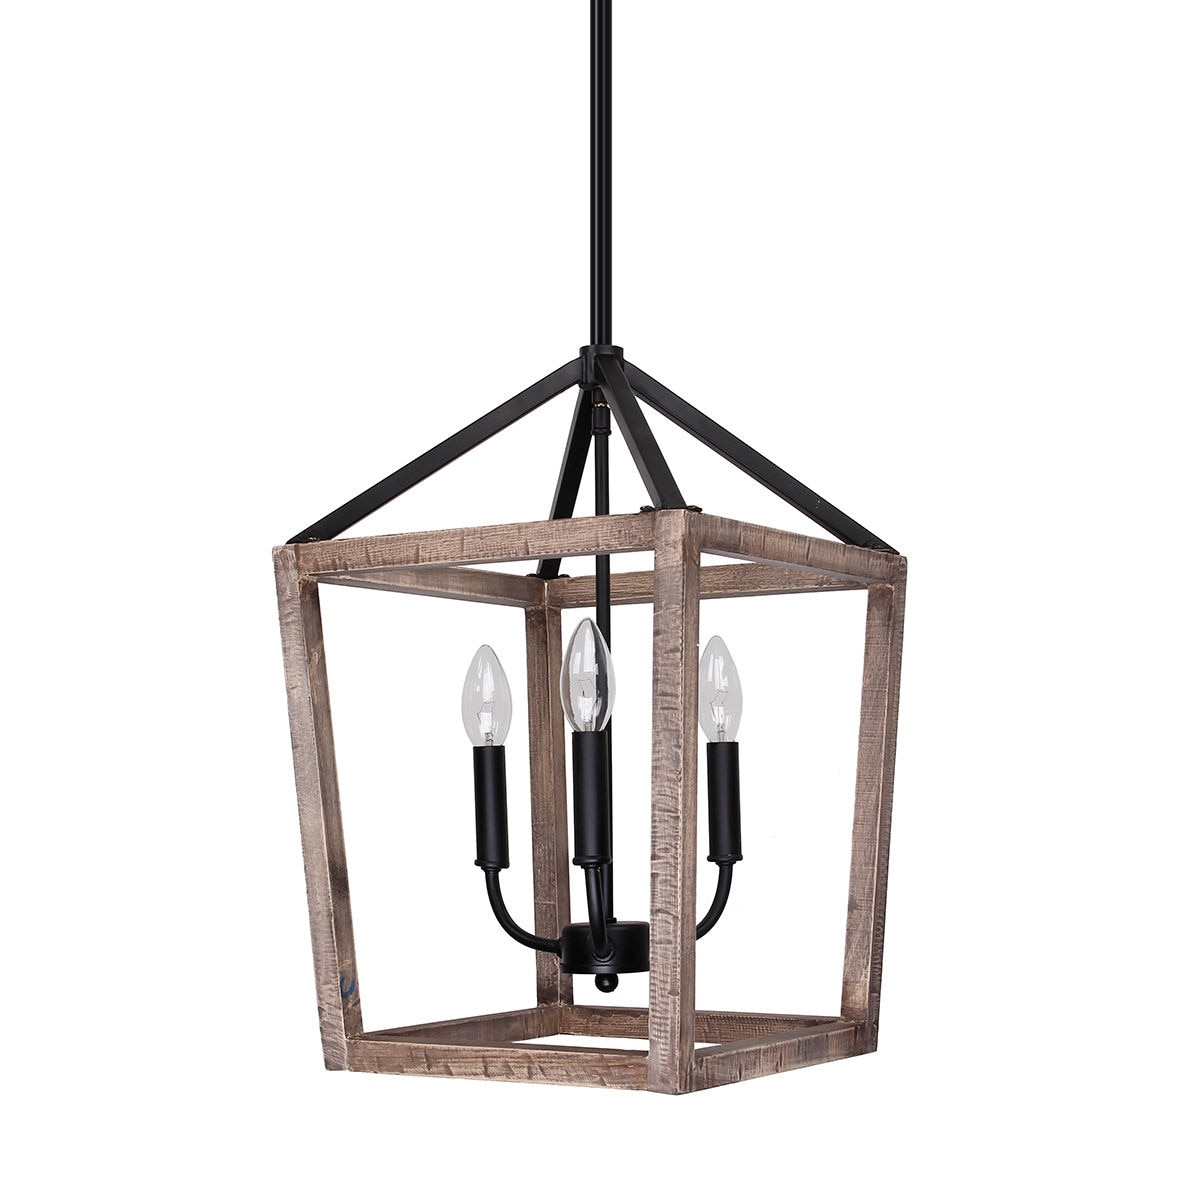 Pendant Lighting Rustic Weathered Oak Wood 3 Light Pendant Lighting Chandelier